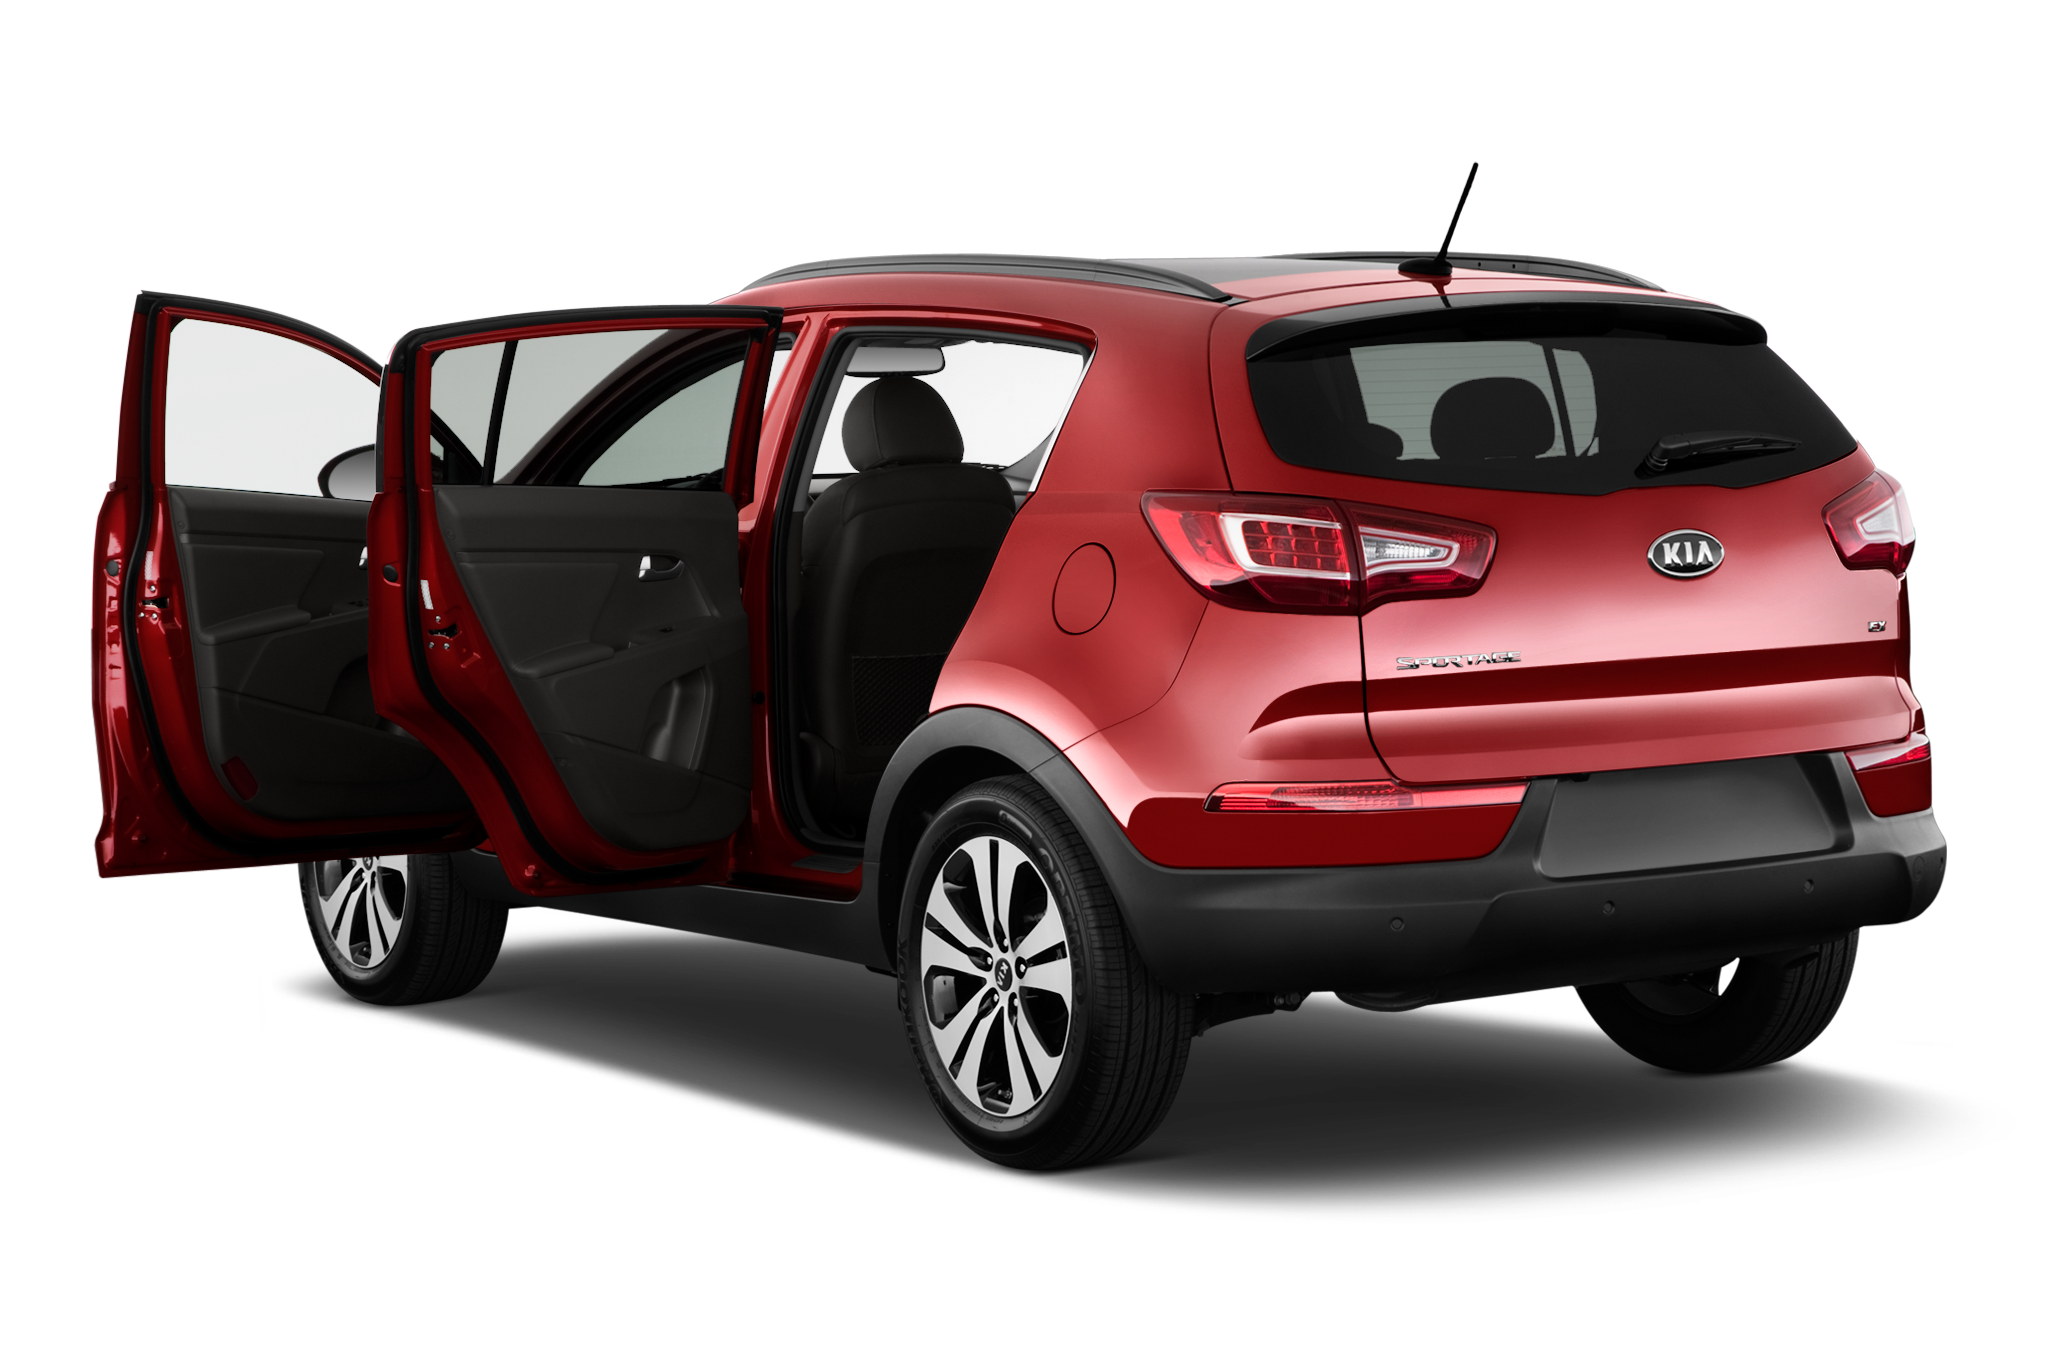 2015 kia sportage gets price bump starts at 22 645. Black Bedroom Furniture Sets. Home Design Ideas